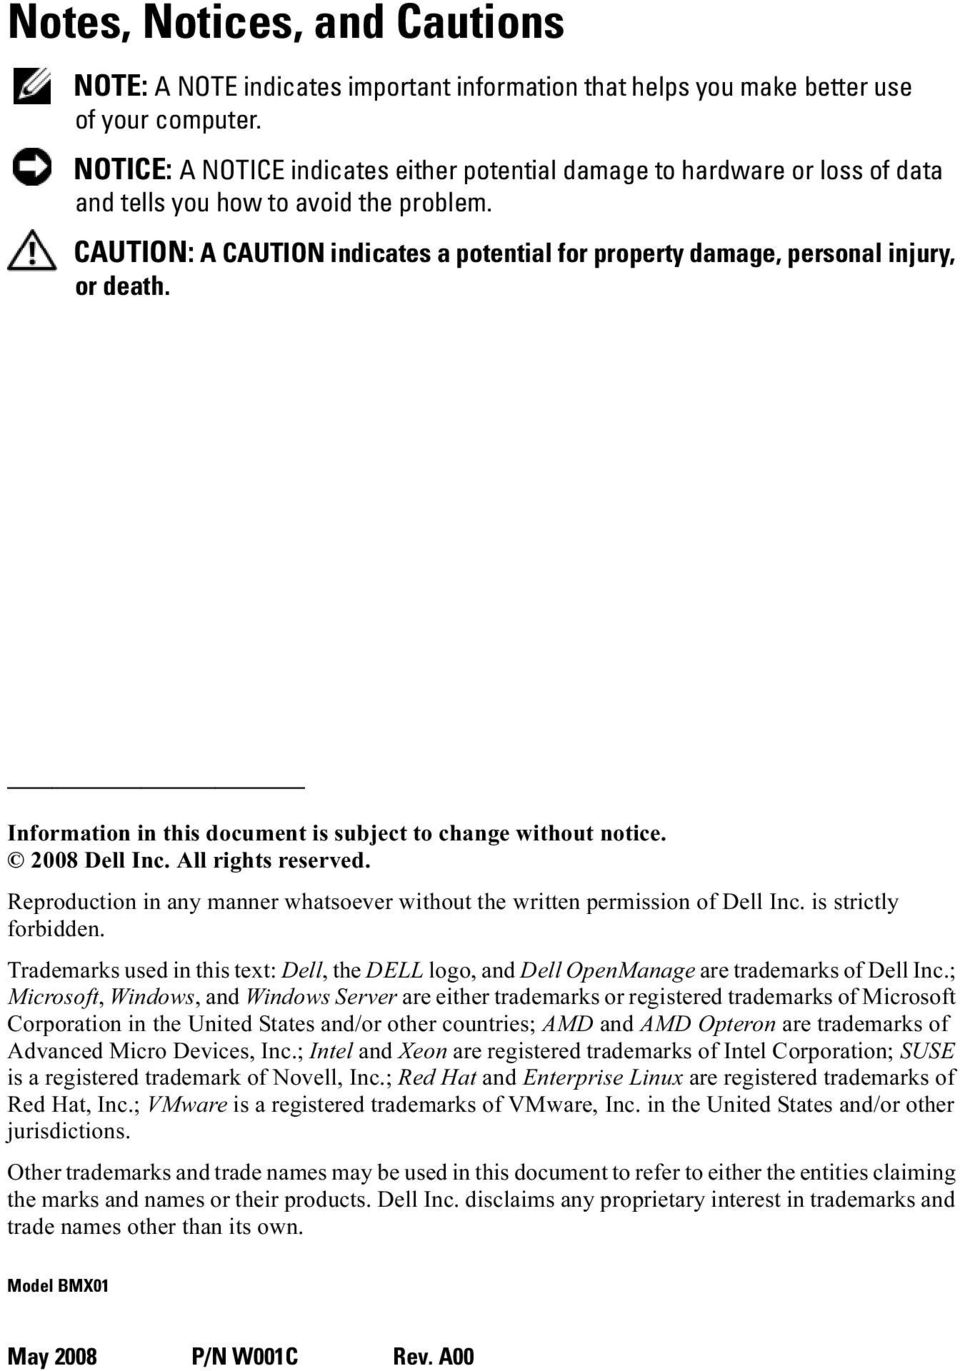 CAUTION: A CAUTION indicates a potential for property damage, personal injury, or death. Information in this document is subject to change without notice. 2008 Dell Inc. All rights reserved.